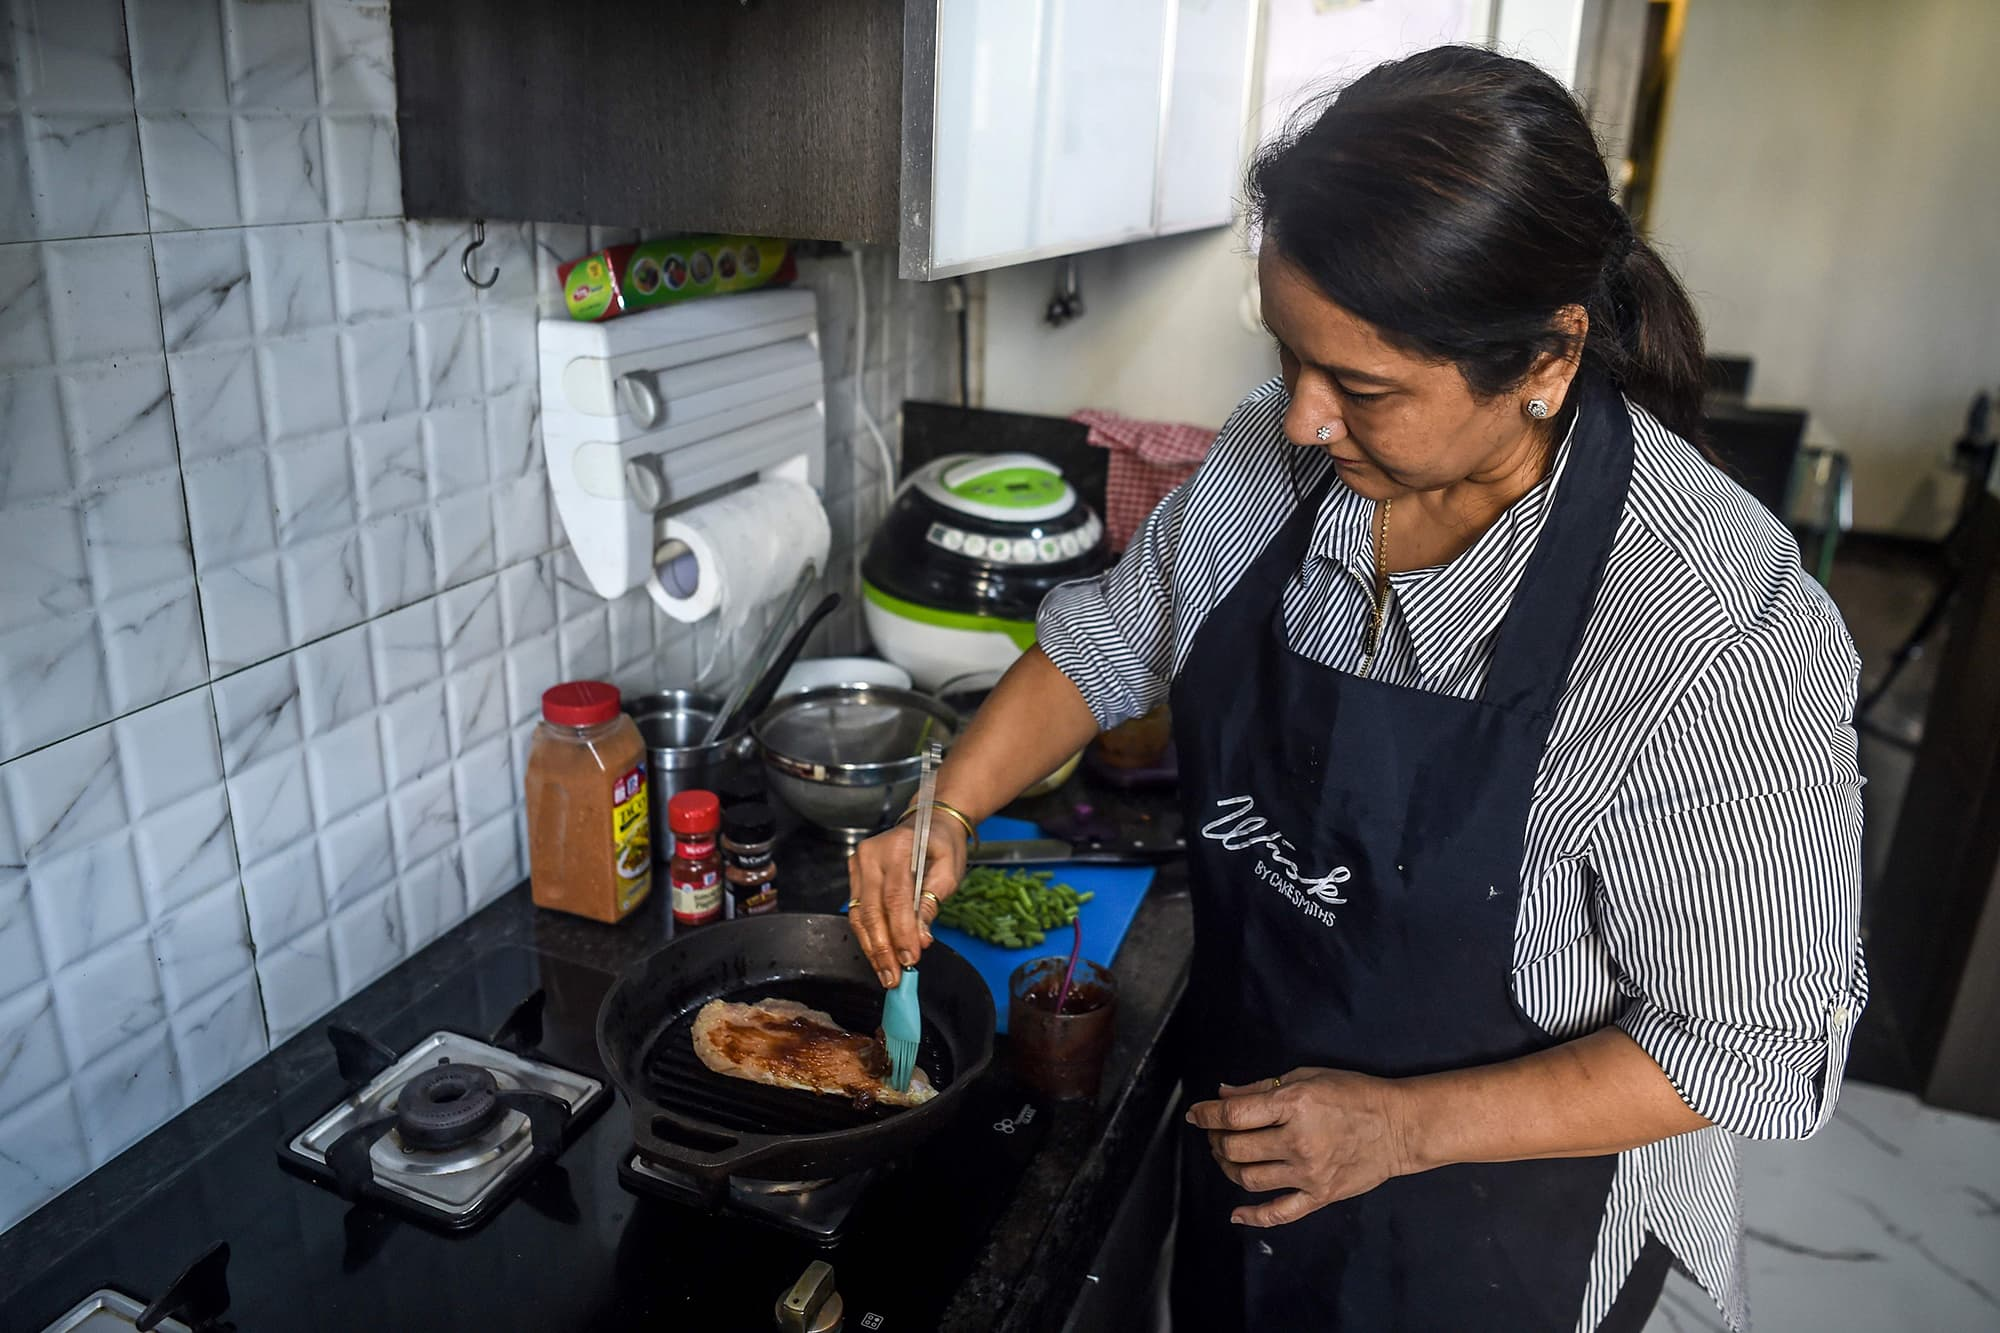 "In this photo taken on January 8, 2020, home chef Rashmi Sahijwala, 59, works to prepare a dish in her kitchen in Mumbai. - Rashmi Sahijwala never expected to start working at the age of 59, let alone join India's gig economy -- now she is part of an army of housewives turning their homes into ""cloud kitchens"" to feed time-starved millennials. (Photo by PUNIT PARANJPE / AFP) / To go with story 'INDIA-ECONOMY-GENDER-FOOD-TECHNOLOGY' by Vishal Manve — AFP or licensors"